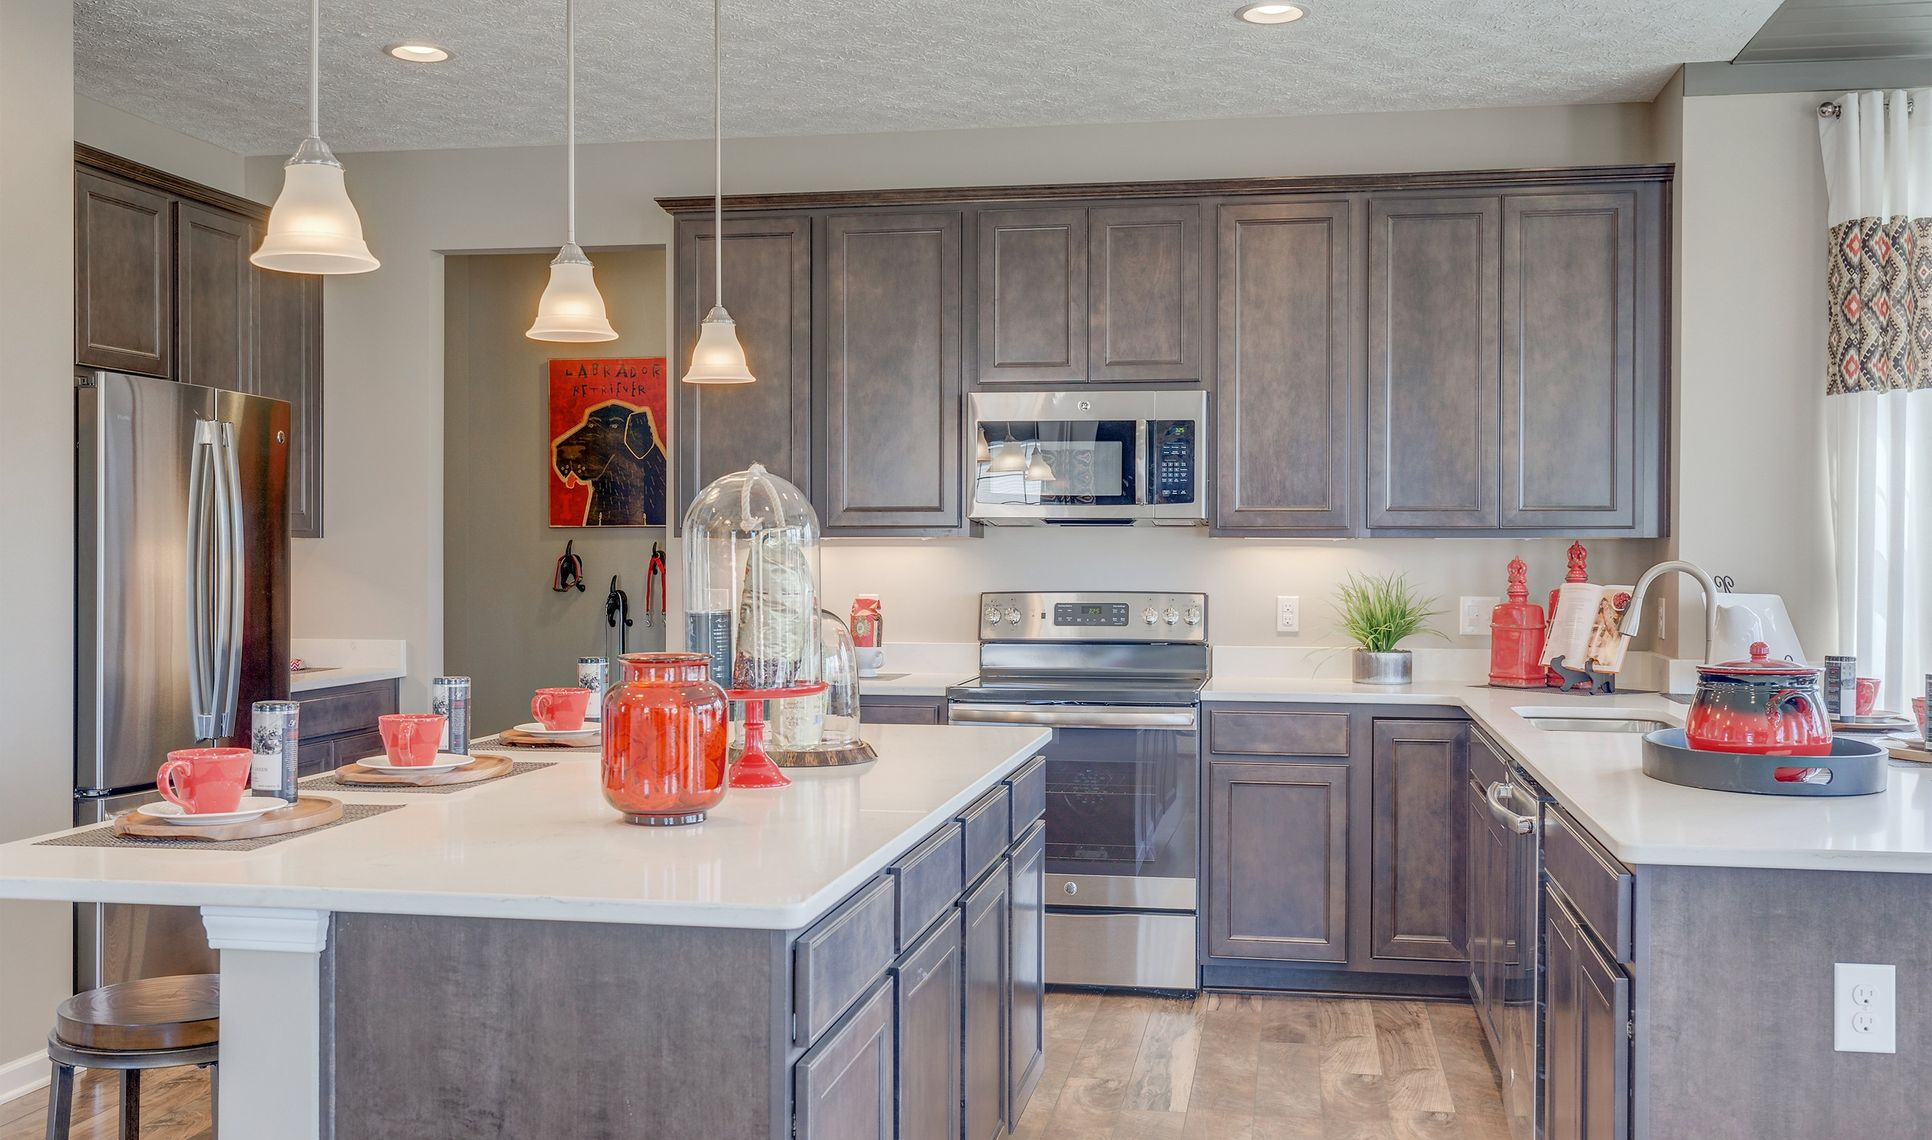 Interior:Ample cabinet space in kitchen